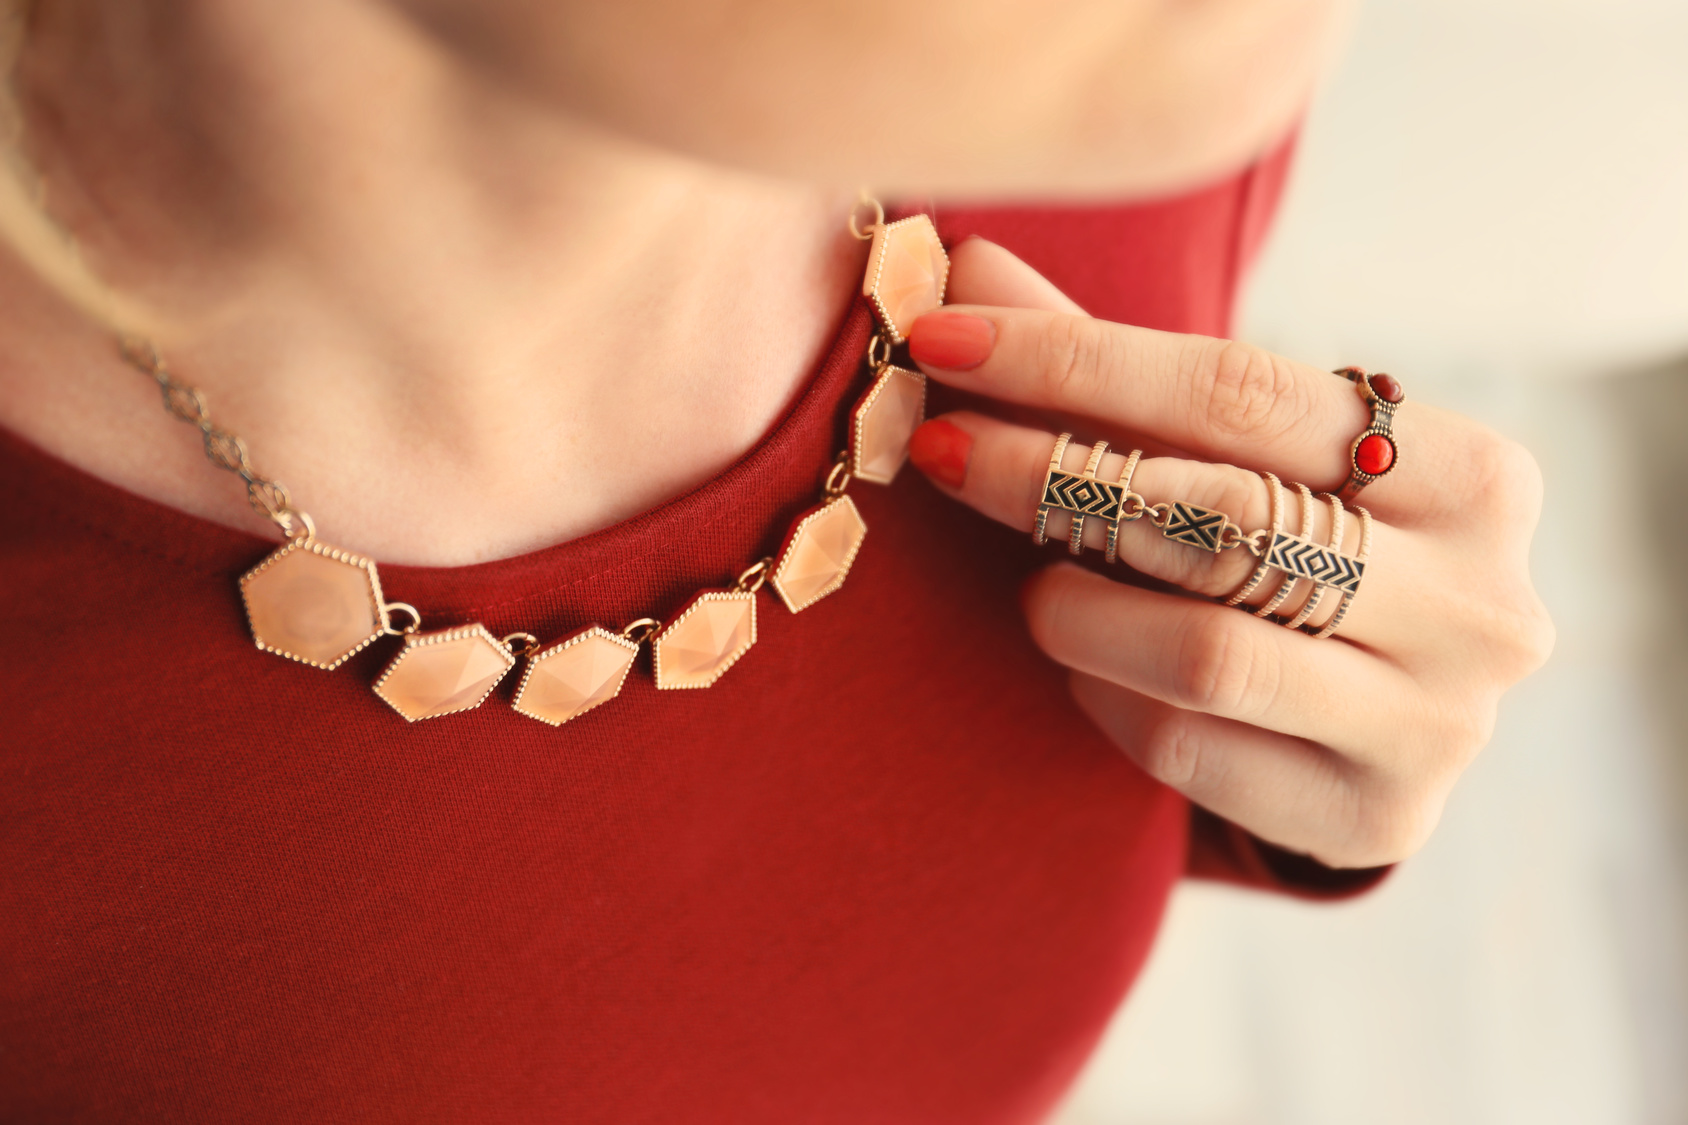 Female hand with beautiful accessories holding necklace, close up